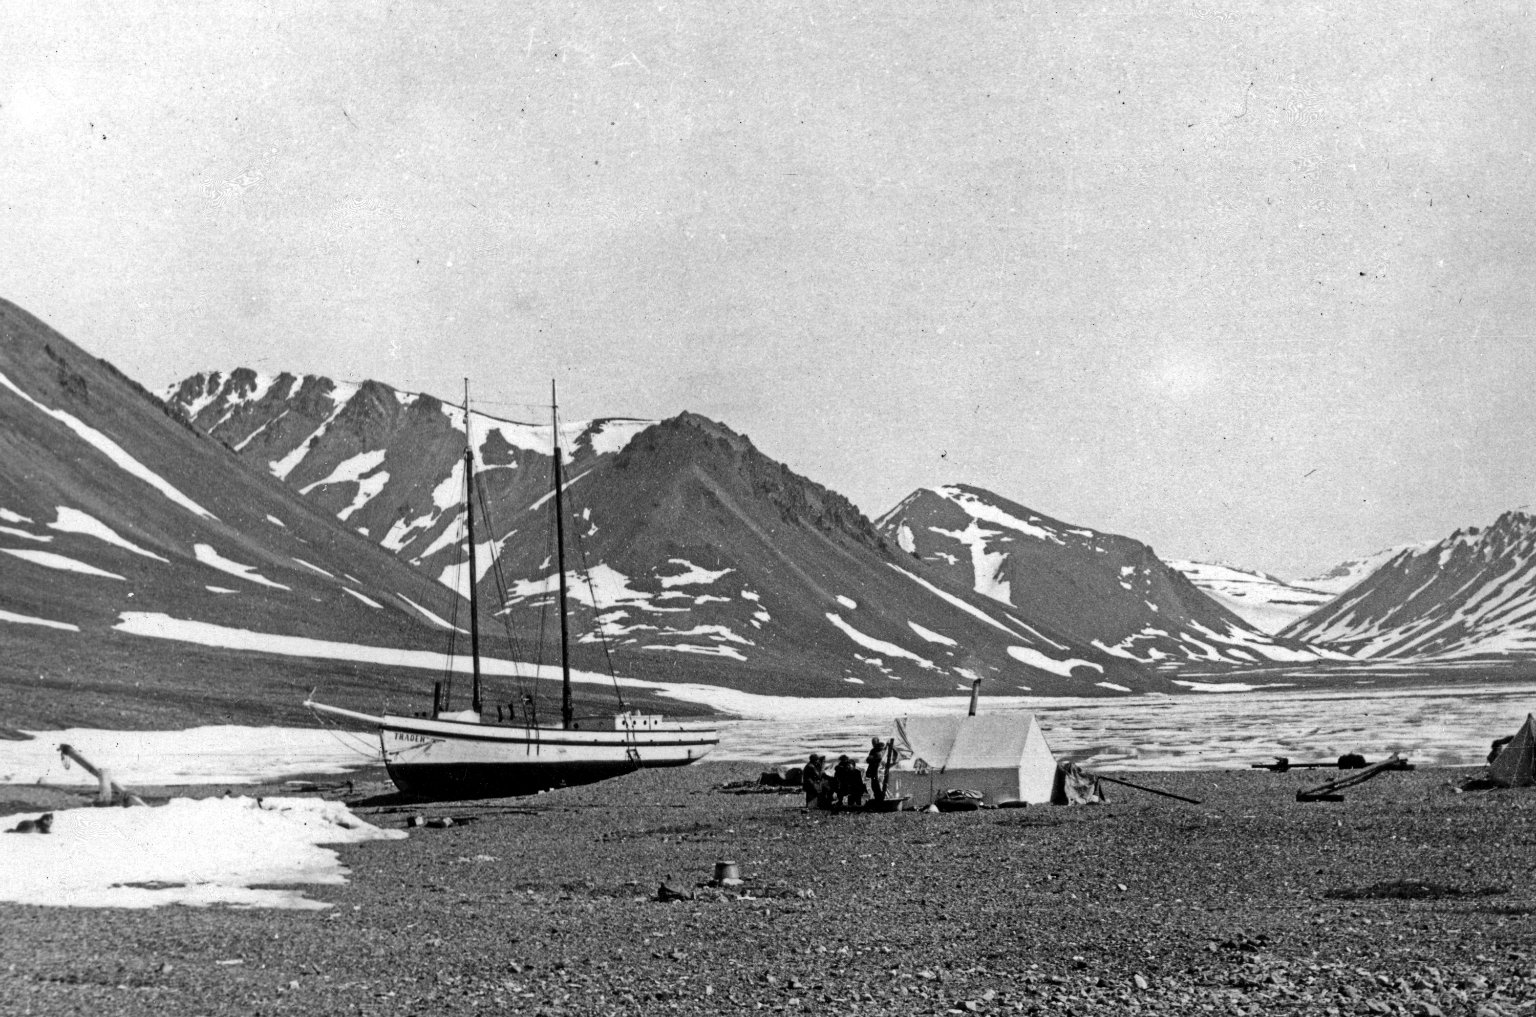 Billy Thompson's schooner and camp